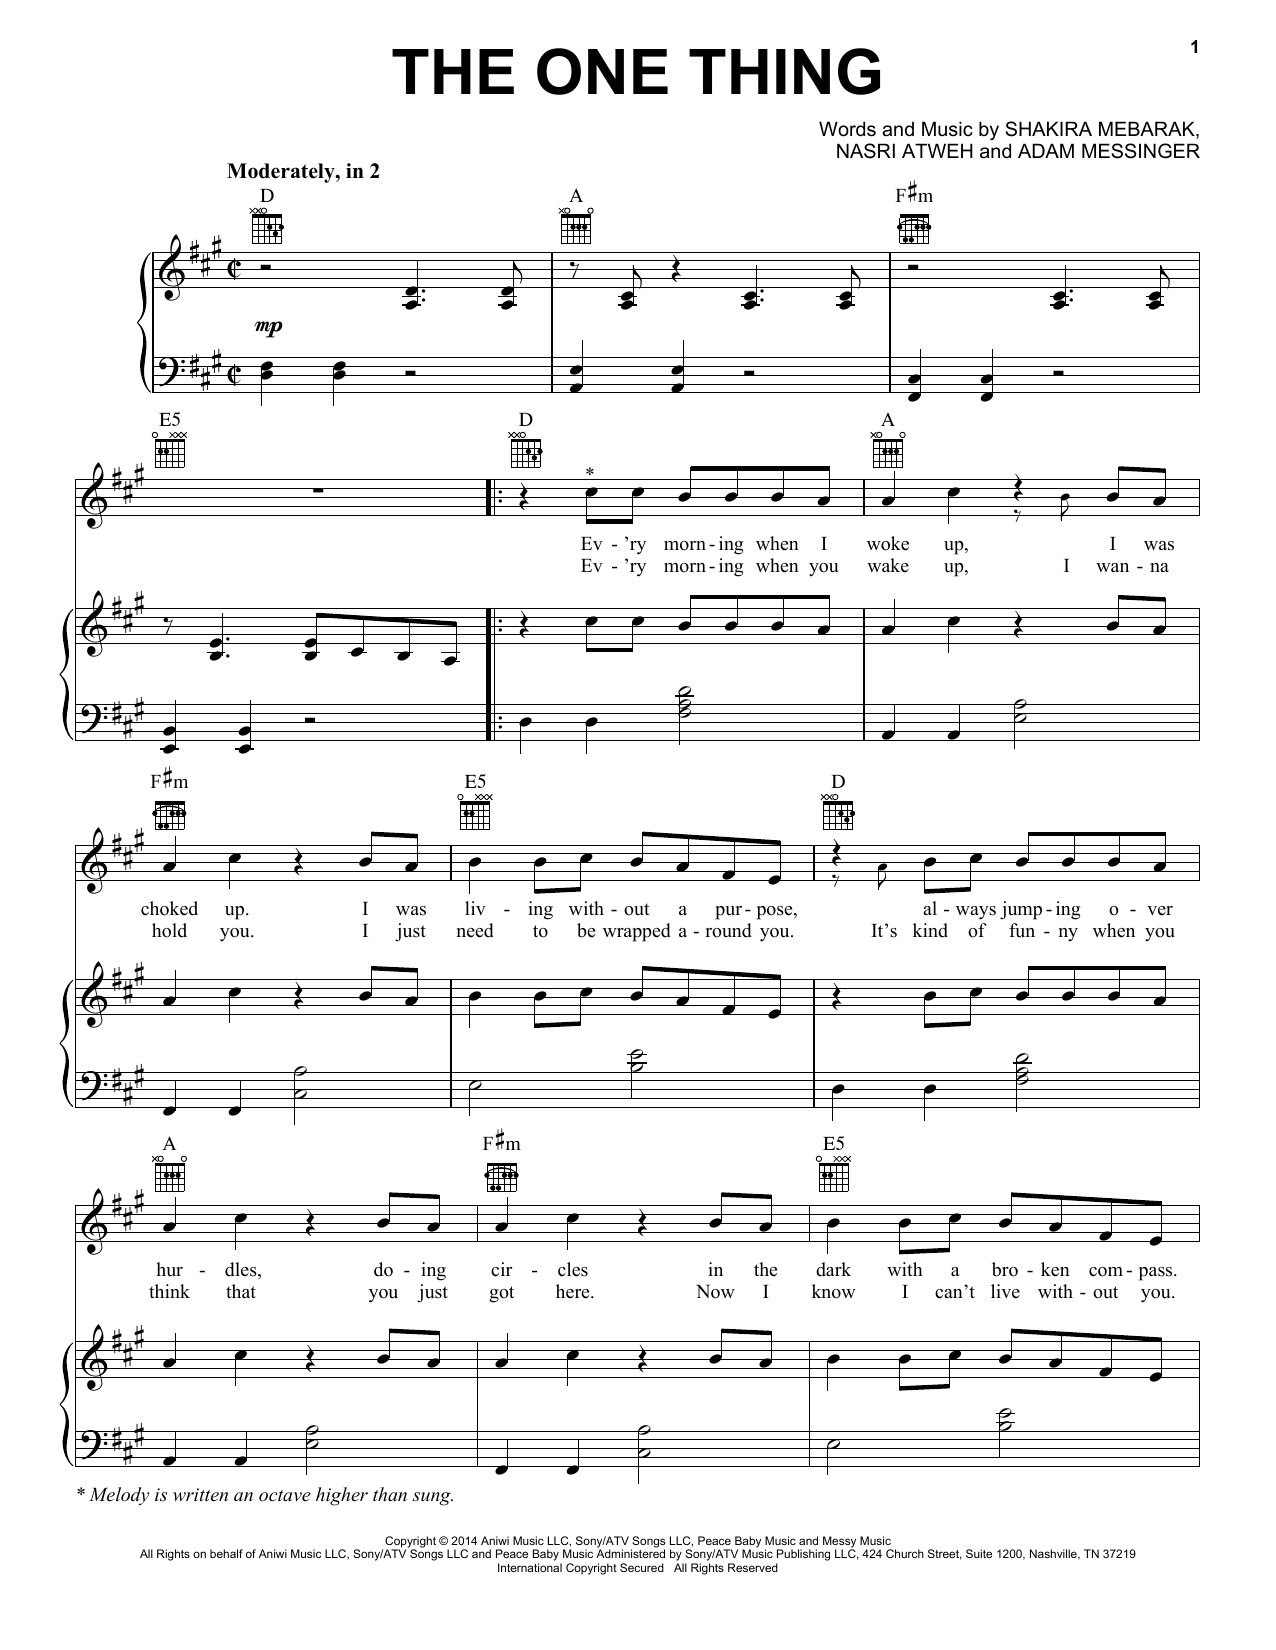 The One Thing Sheet Music